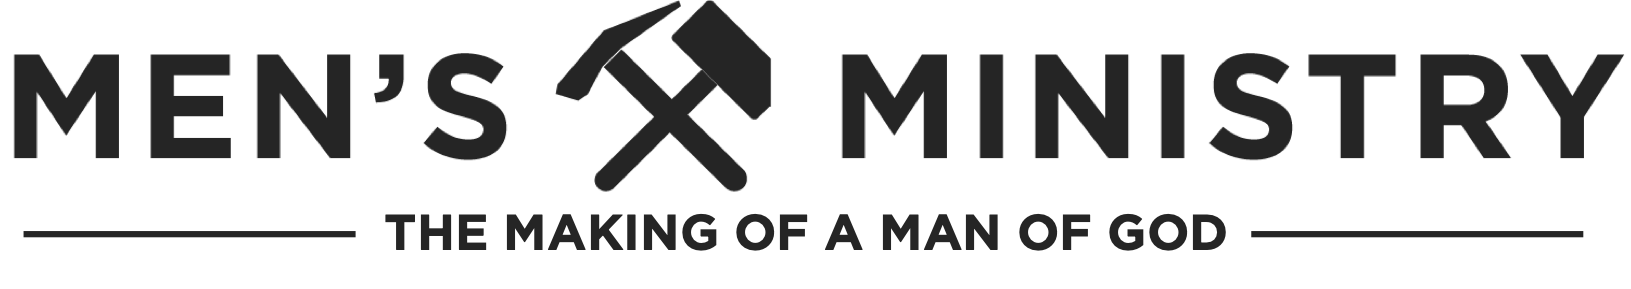 Men's Ministry in Carlsbad, Men's Bible Study, The making of a man of God